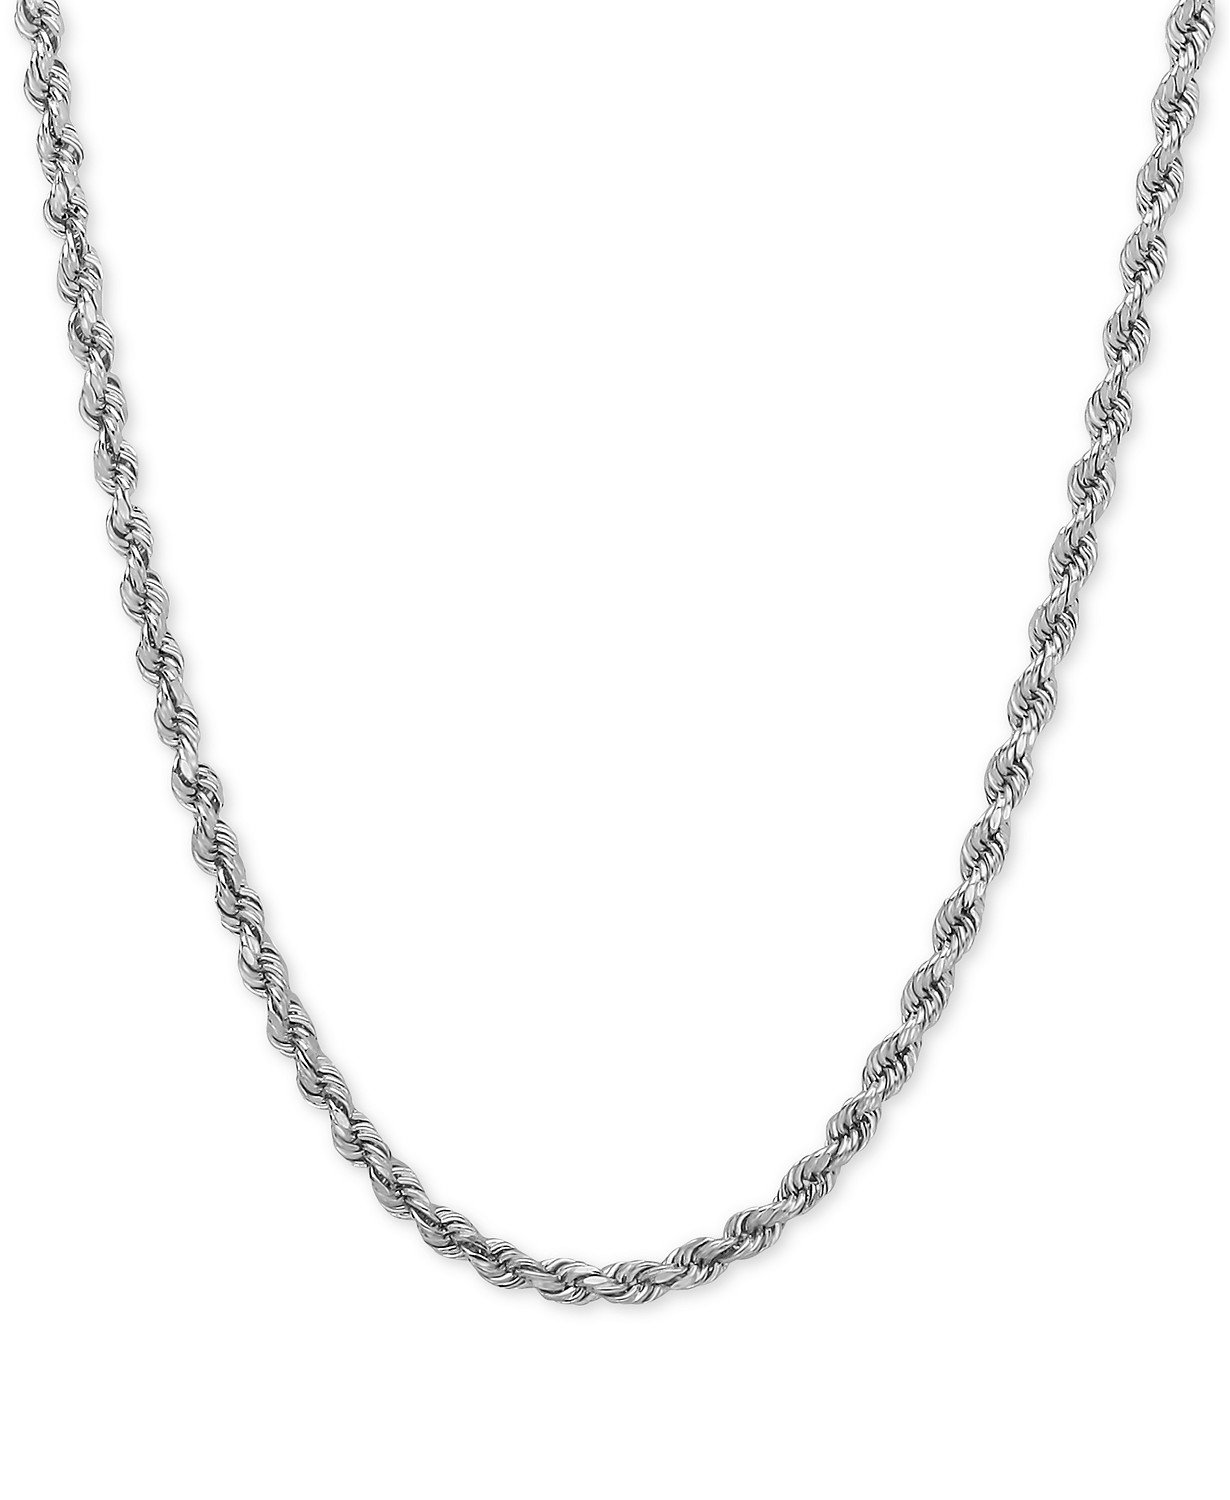 14K Yellow or White Gold 2.00mm Shiny Hollow Rope Chain Necklace for Pendants and Charms with Lobster-Claw Clasp (16'', 18'' or 20 inch) by The Diamond Deal